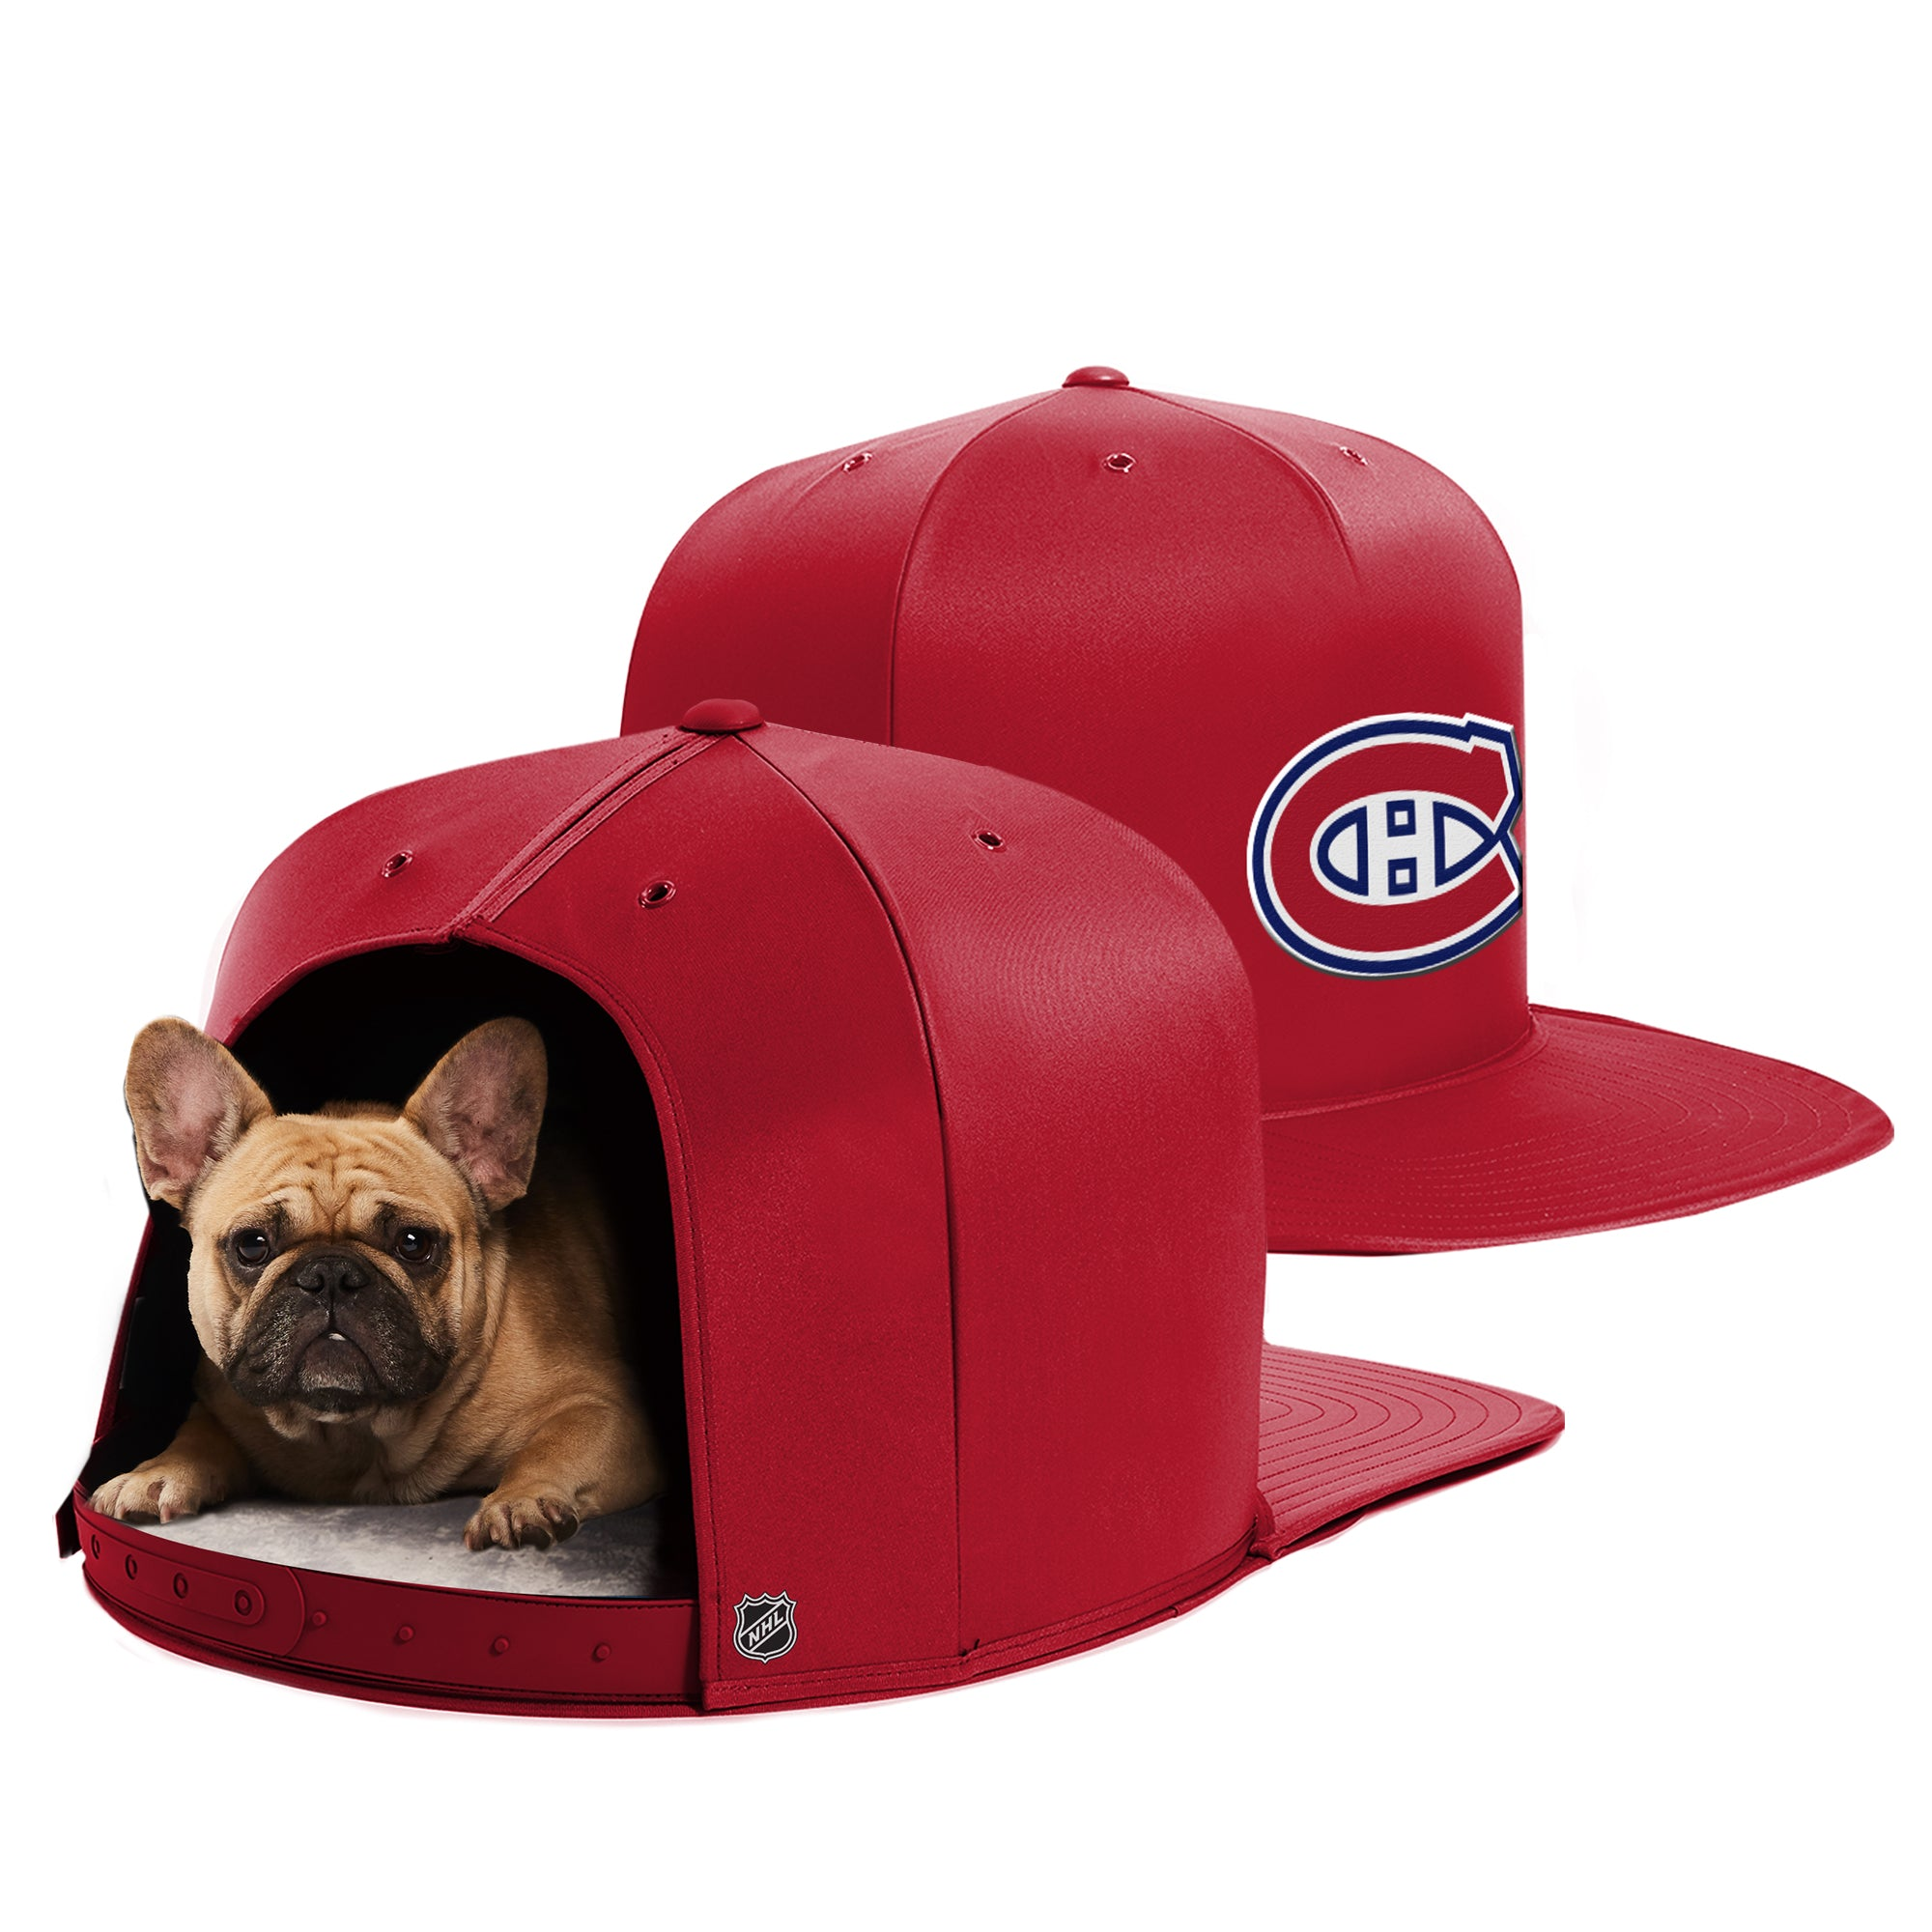 Montreal Canadiens Nap Cap Dog Bed